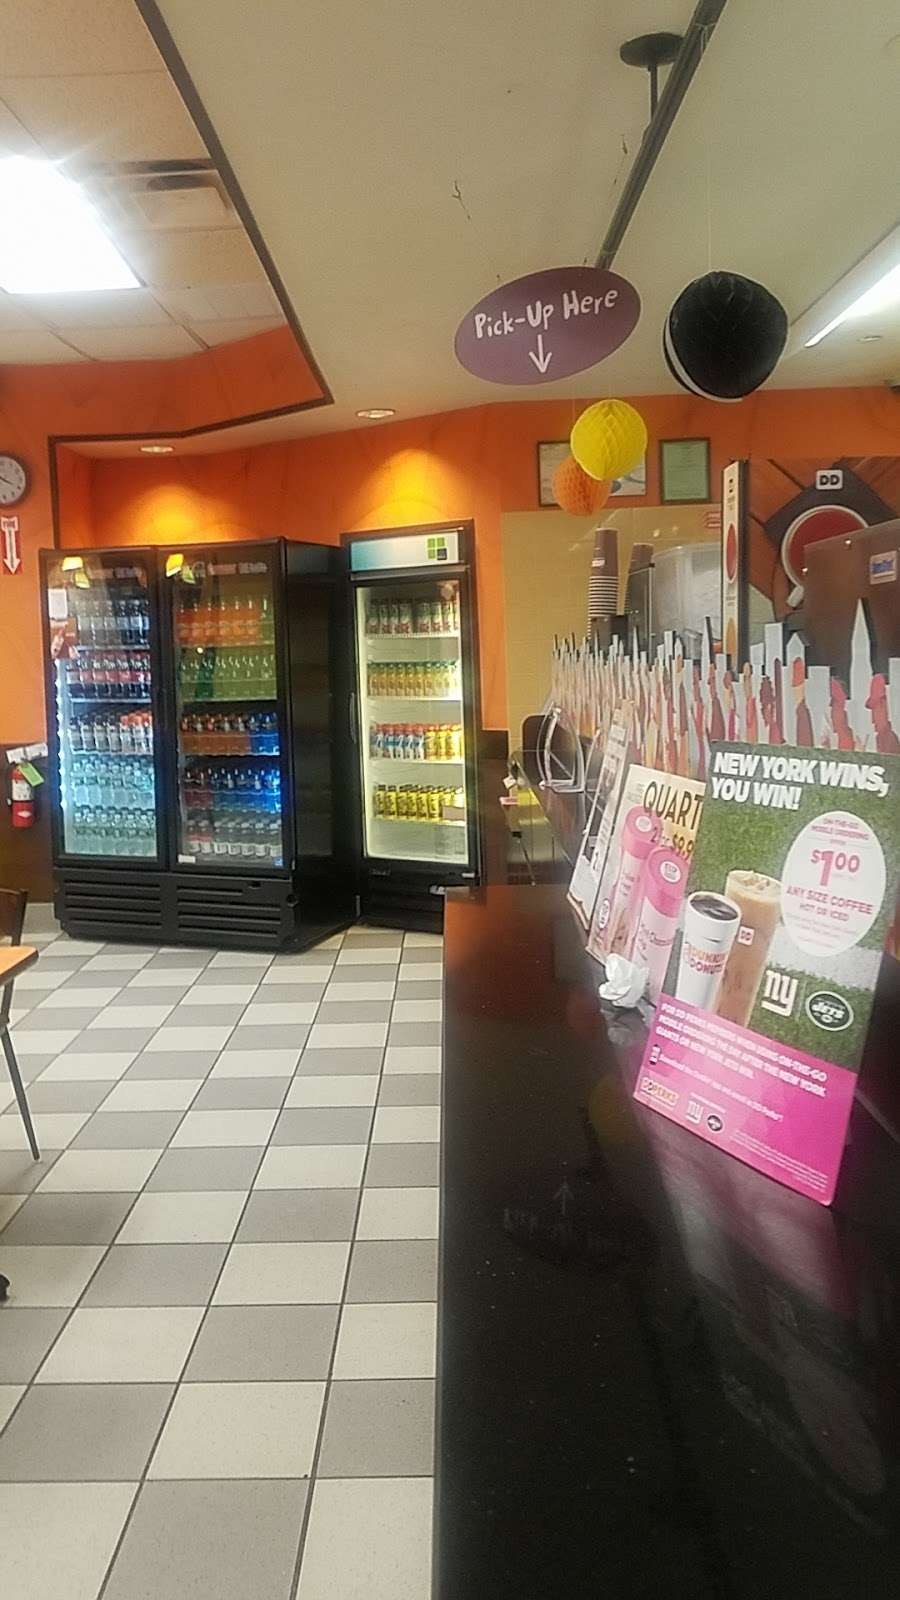 Dunkin Donuts - cafe  | Photo 2 of 10 | Address: 850 Bronx River Rd, Yonkers, NY 10708, USA | Phone: (914) 237-5921